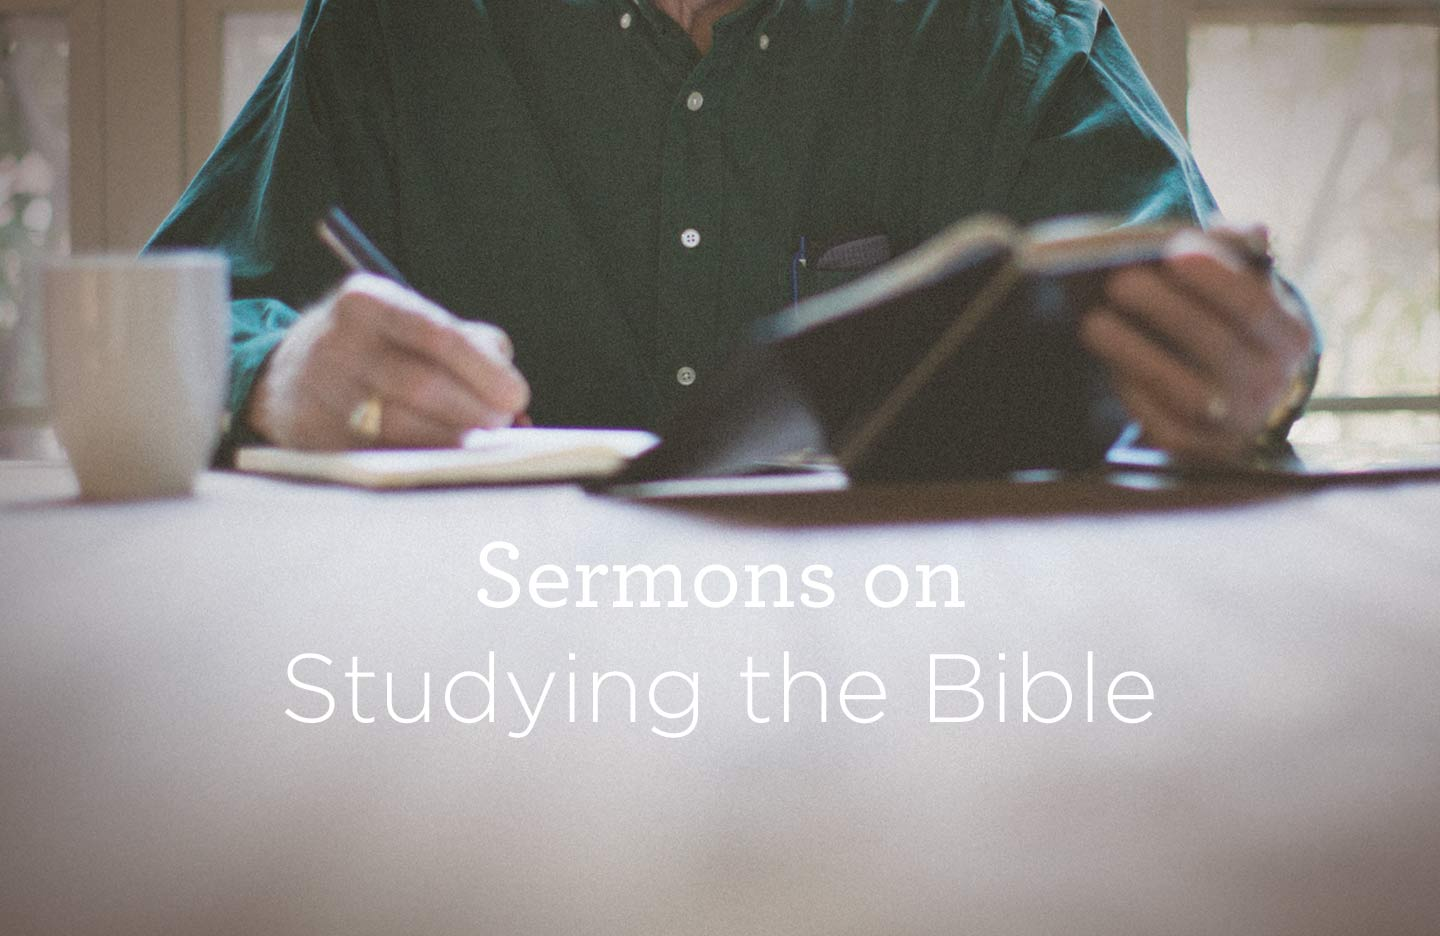 thumbnail image for Sermons on Studying the Bible